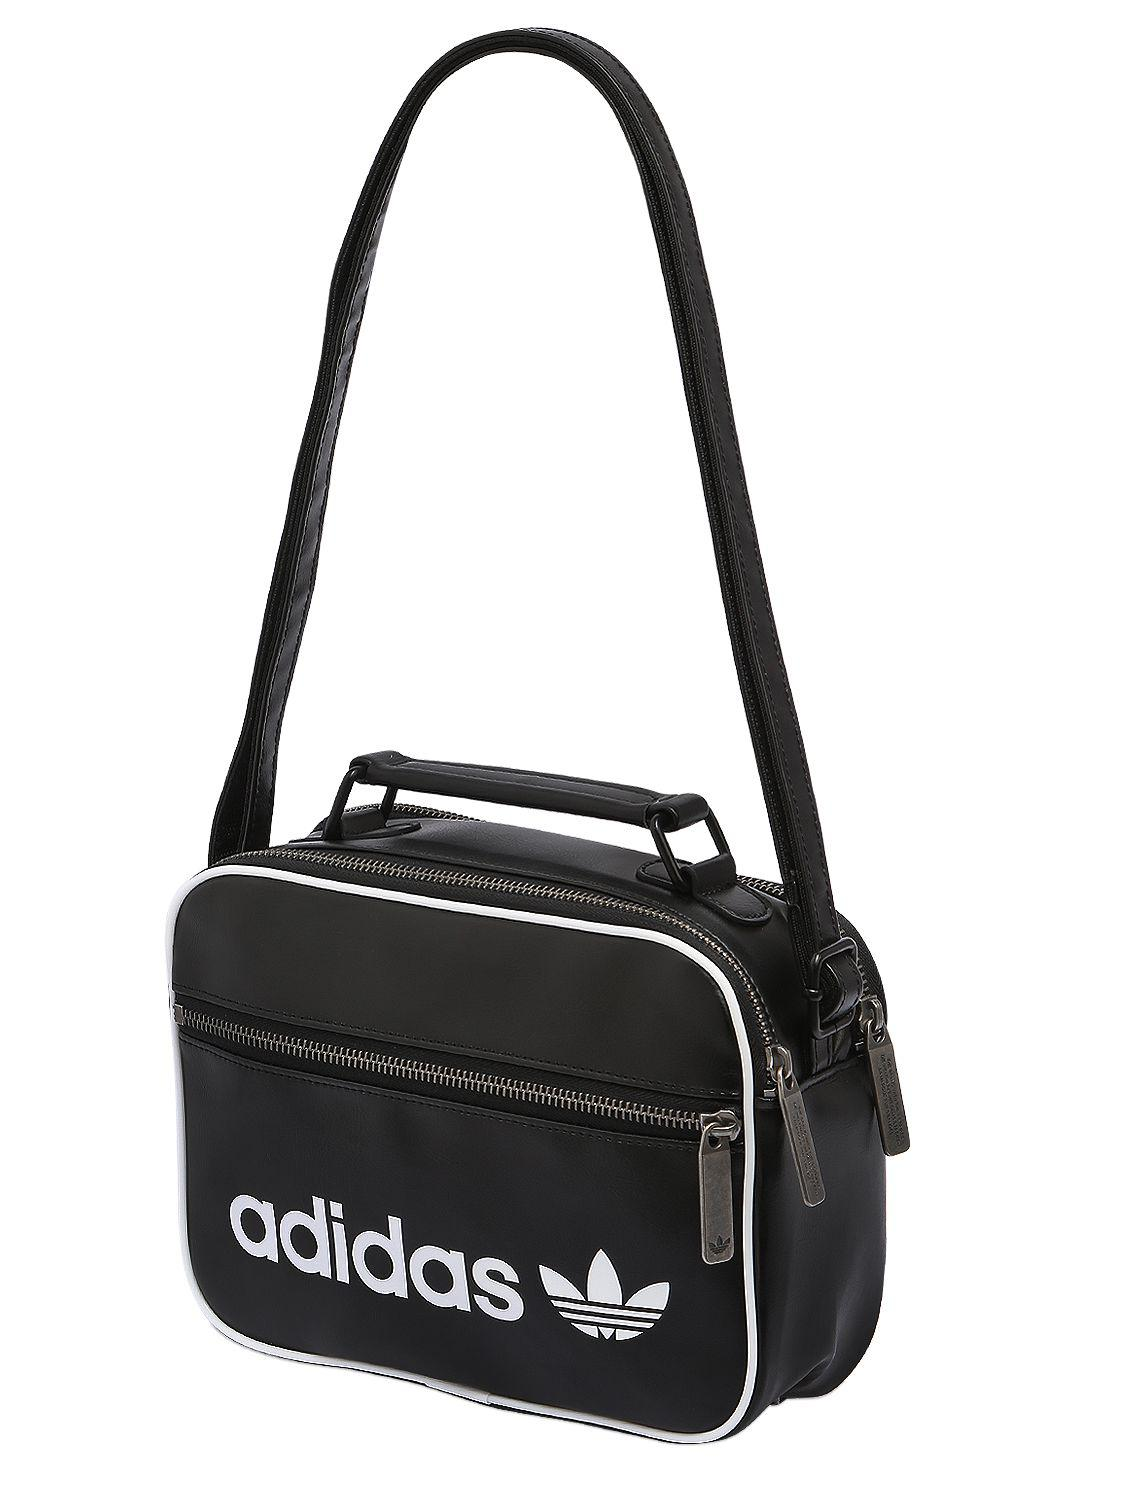 c971bf07f7 adidas Originals Mini Airliner Vintage Faux Leather Bag in Black - Lyst